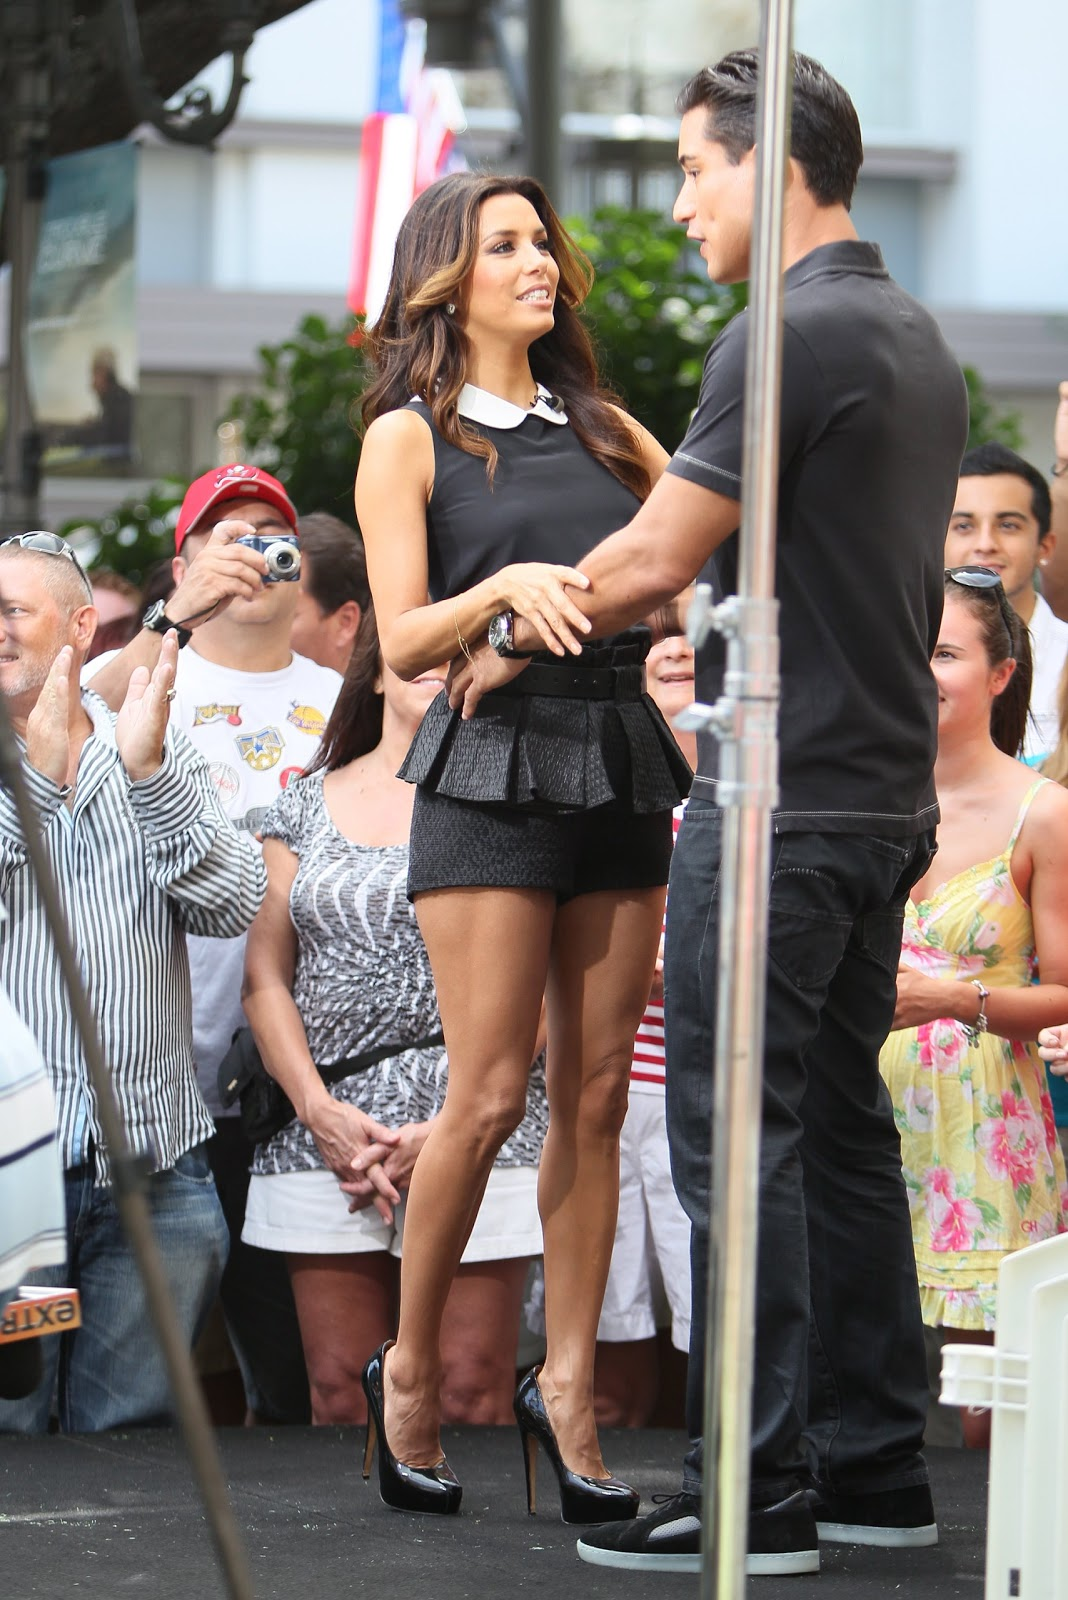 63681_Eva_​Longoria_a​t_Extra_at​_The_Grove​_in_LA_Sep​tember_11_​2012_14_12​2_13lo